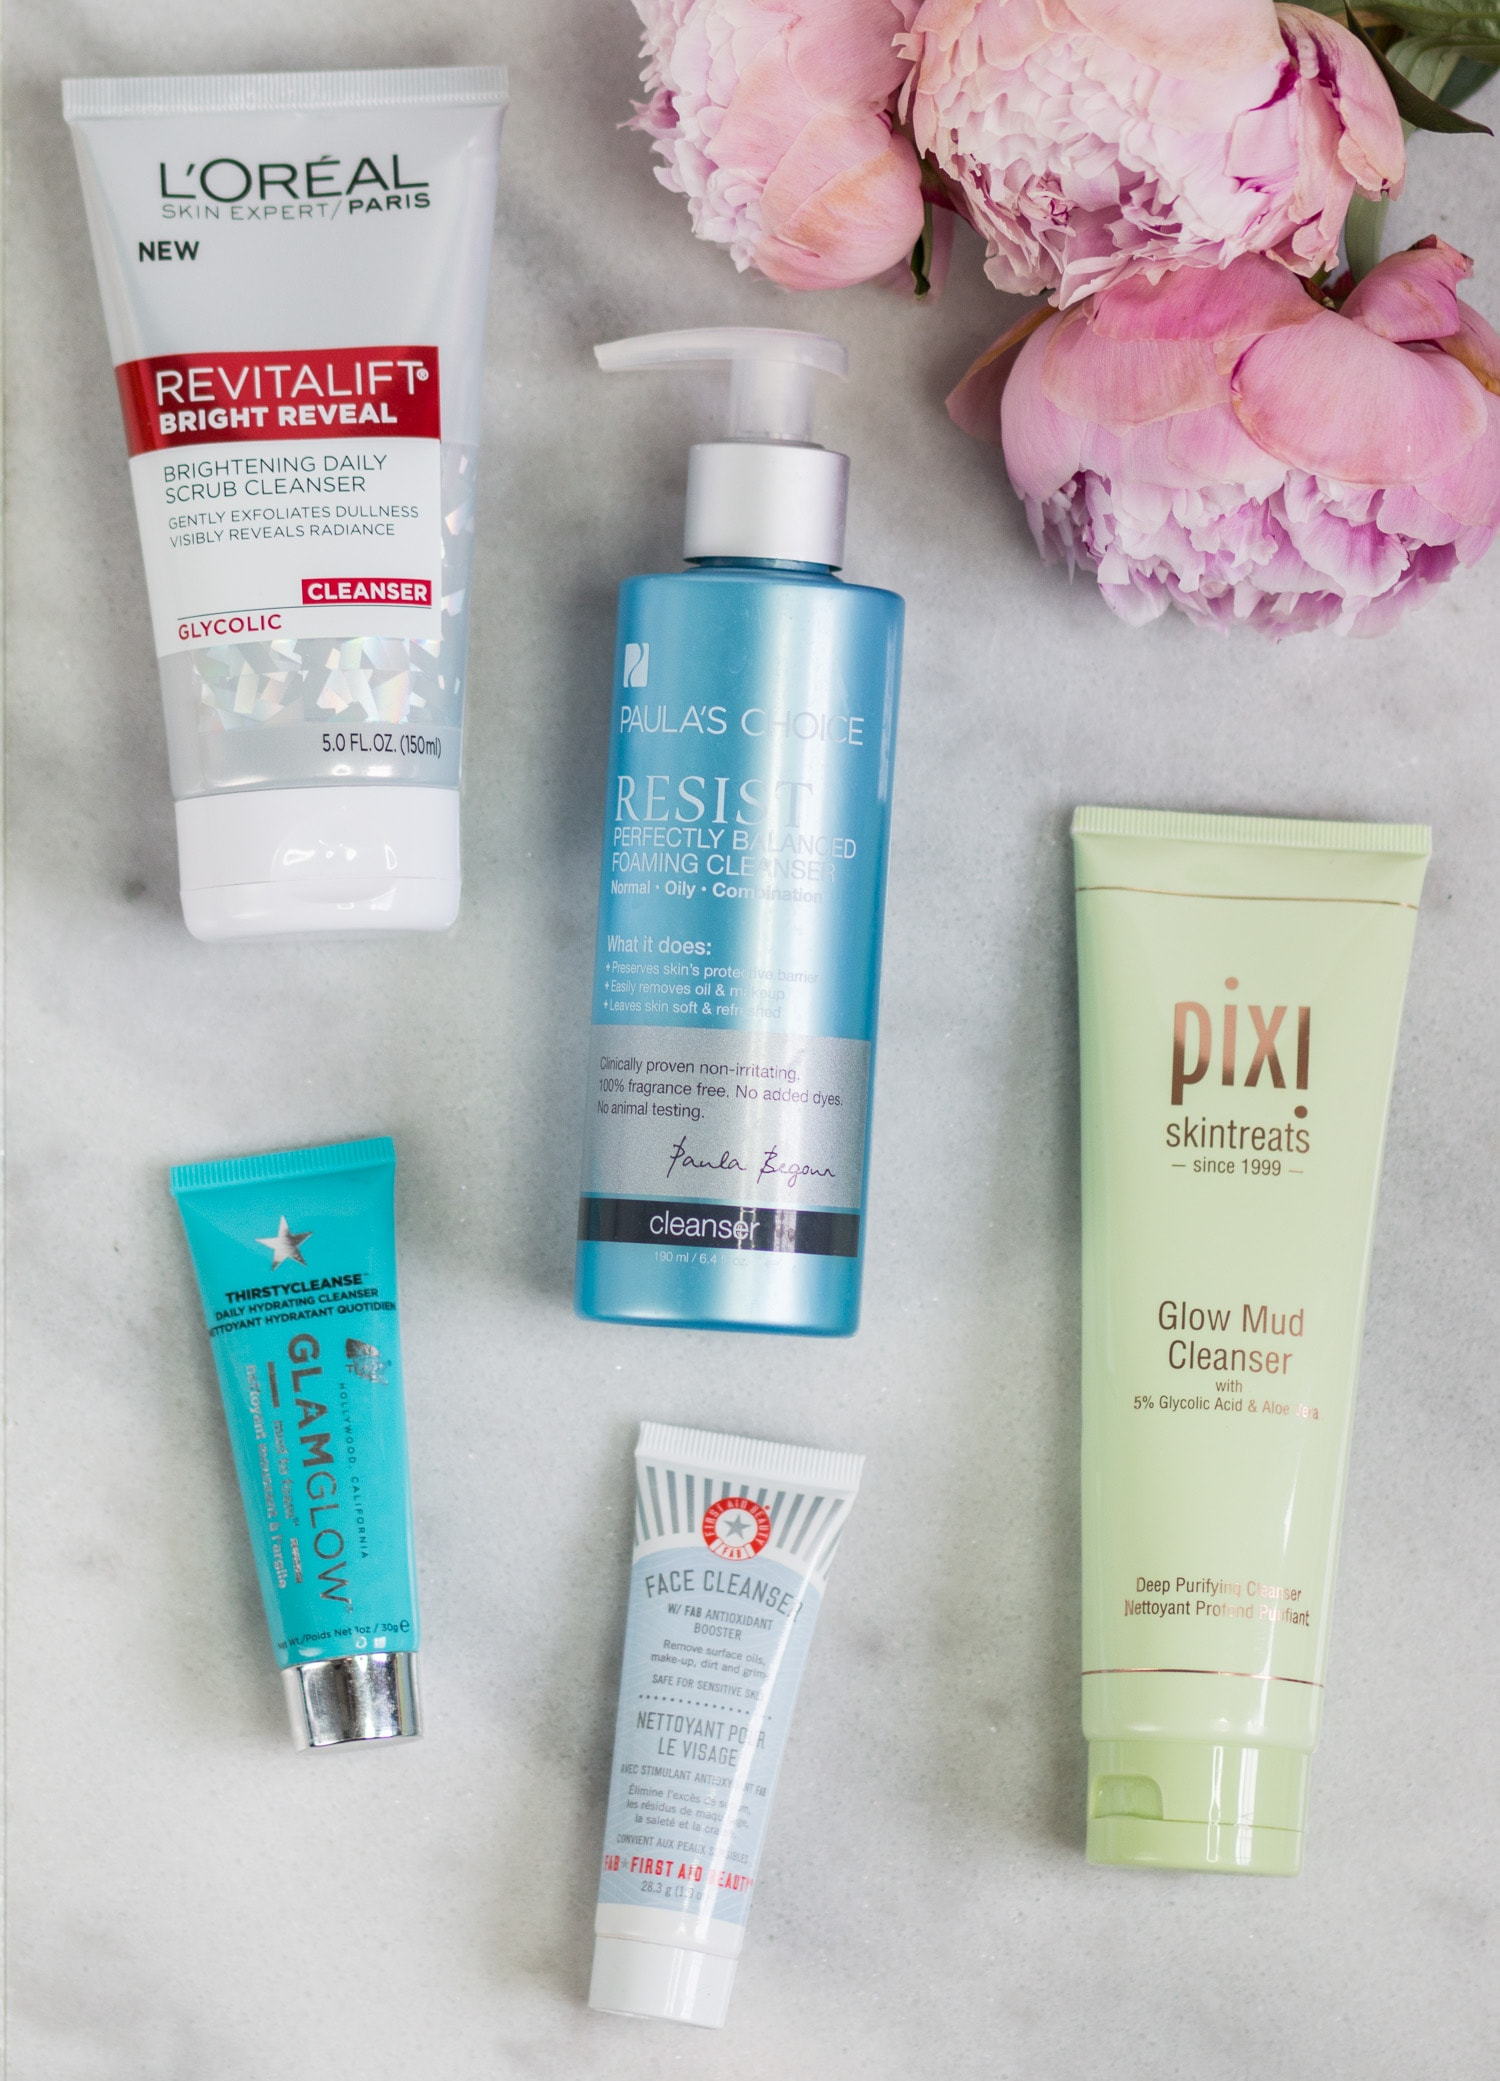 The best new skincare products for women in their 20s - including the best cleansers + a review of L'ORÉAL Revitalift Bright Reveal Cleanser, Paula's Choice Resist Perfectly Balanced Foaming Cleanser, Pixi Glow Mud Cleanser, GLAMGLOW ThirstyCleanse Daily Hydrating Cleanser, and First Aid Beauty Face Cleanser by beauty blogger Ashley Brooke Nicholas